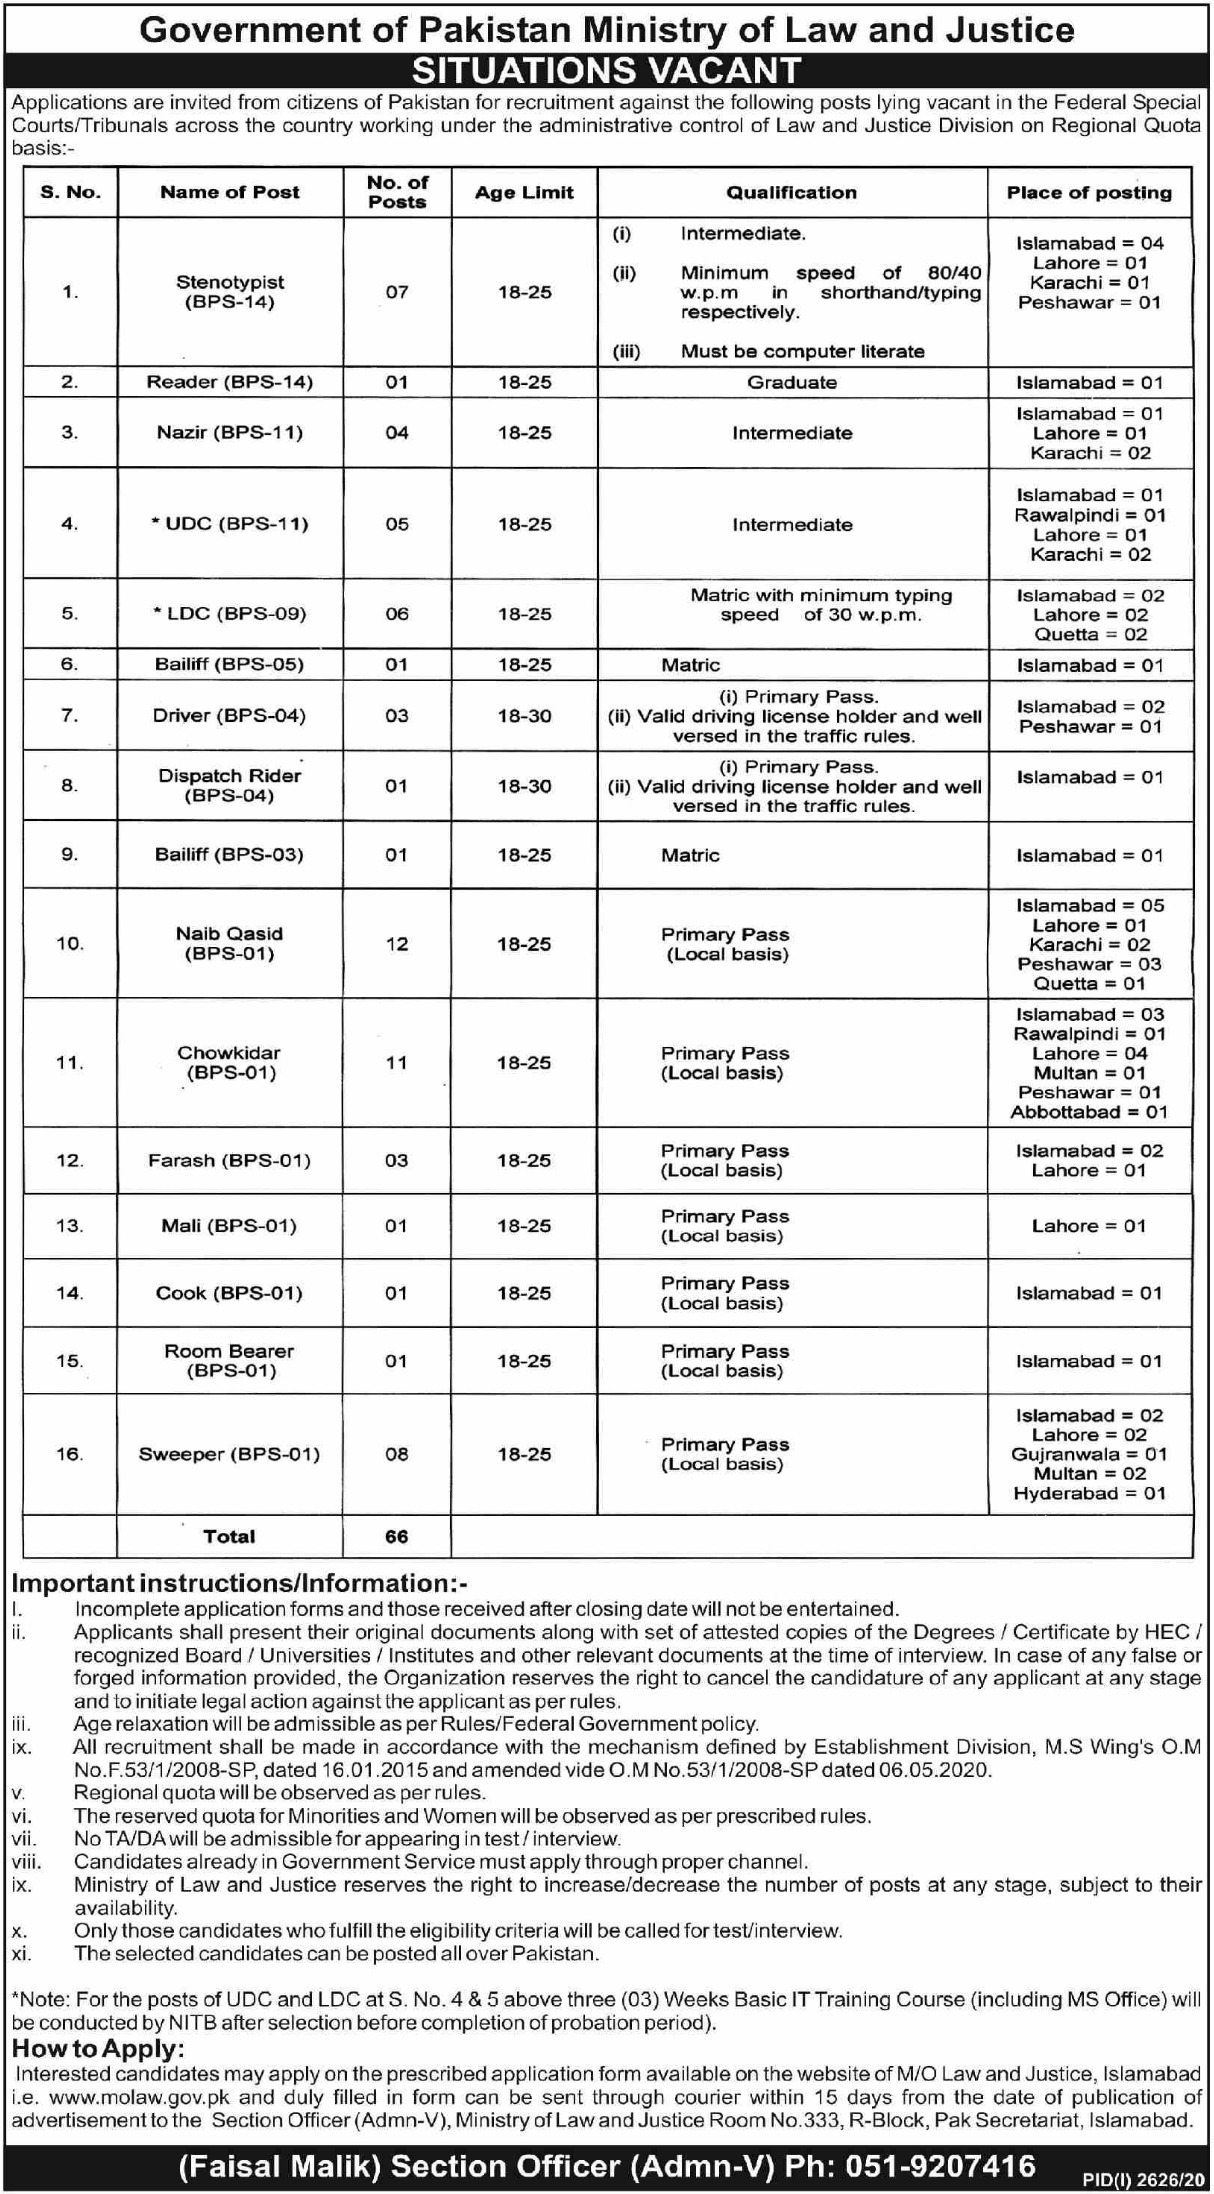 Ministry of Law & Justice Jobs November 2020